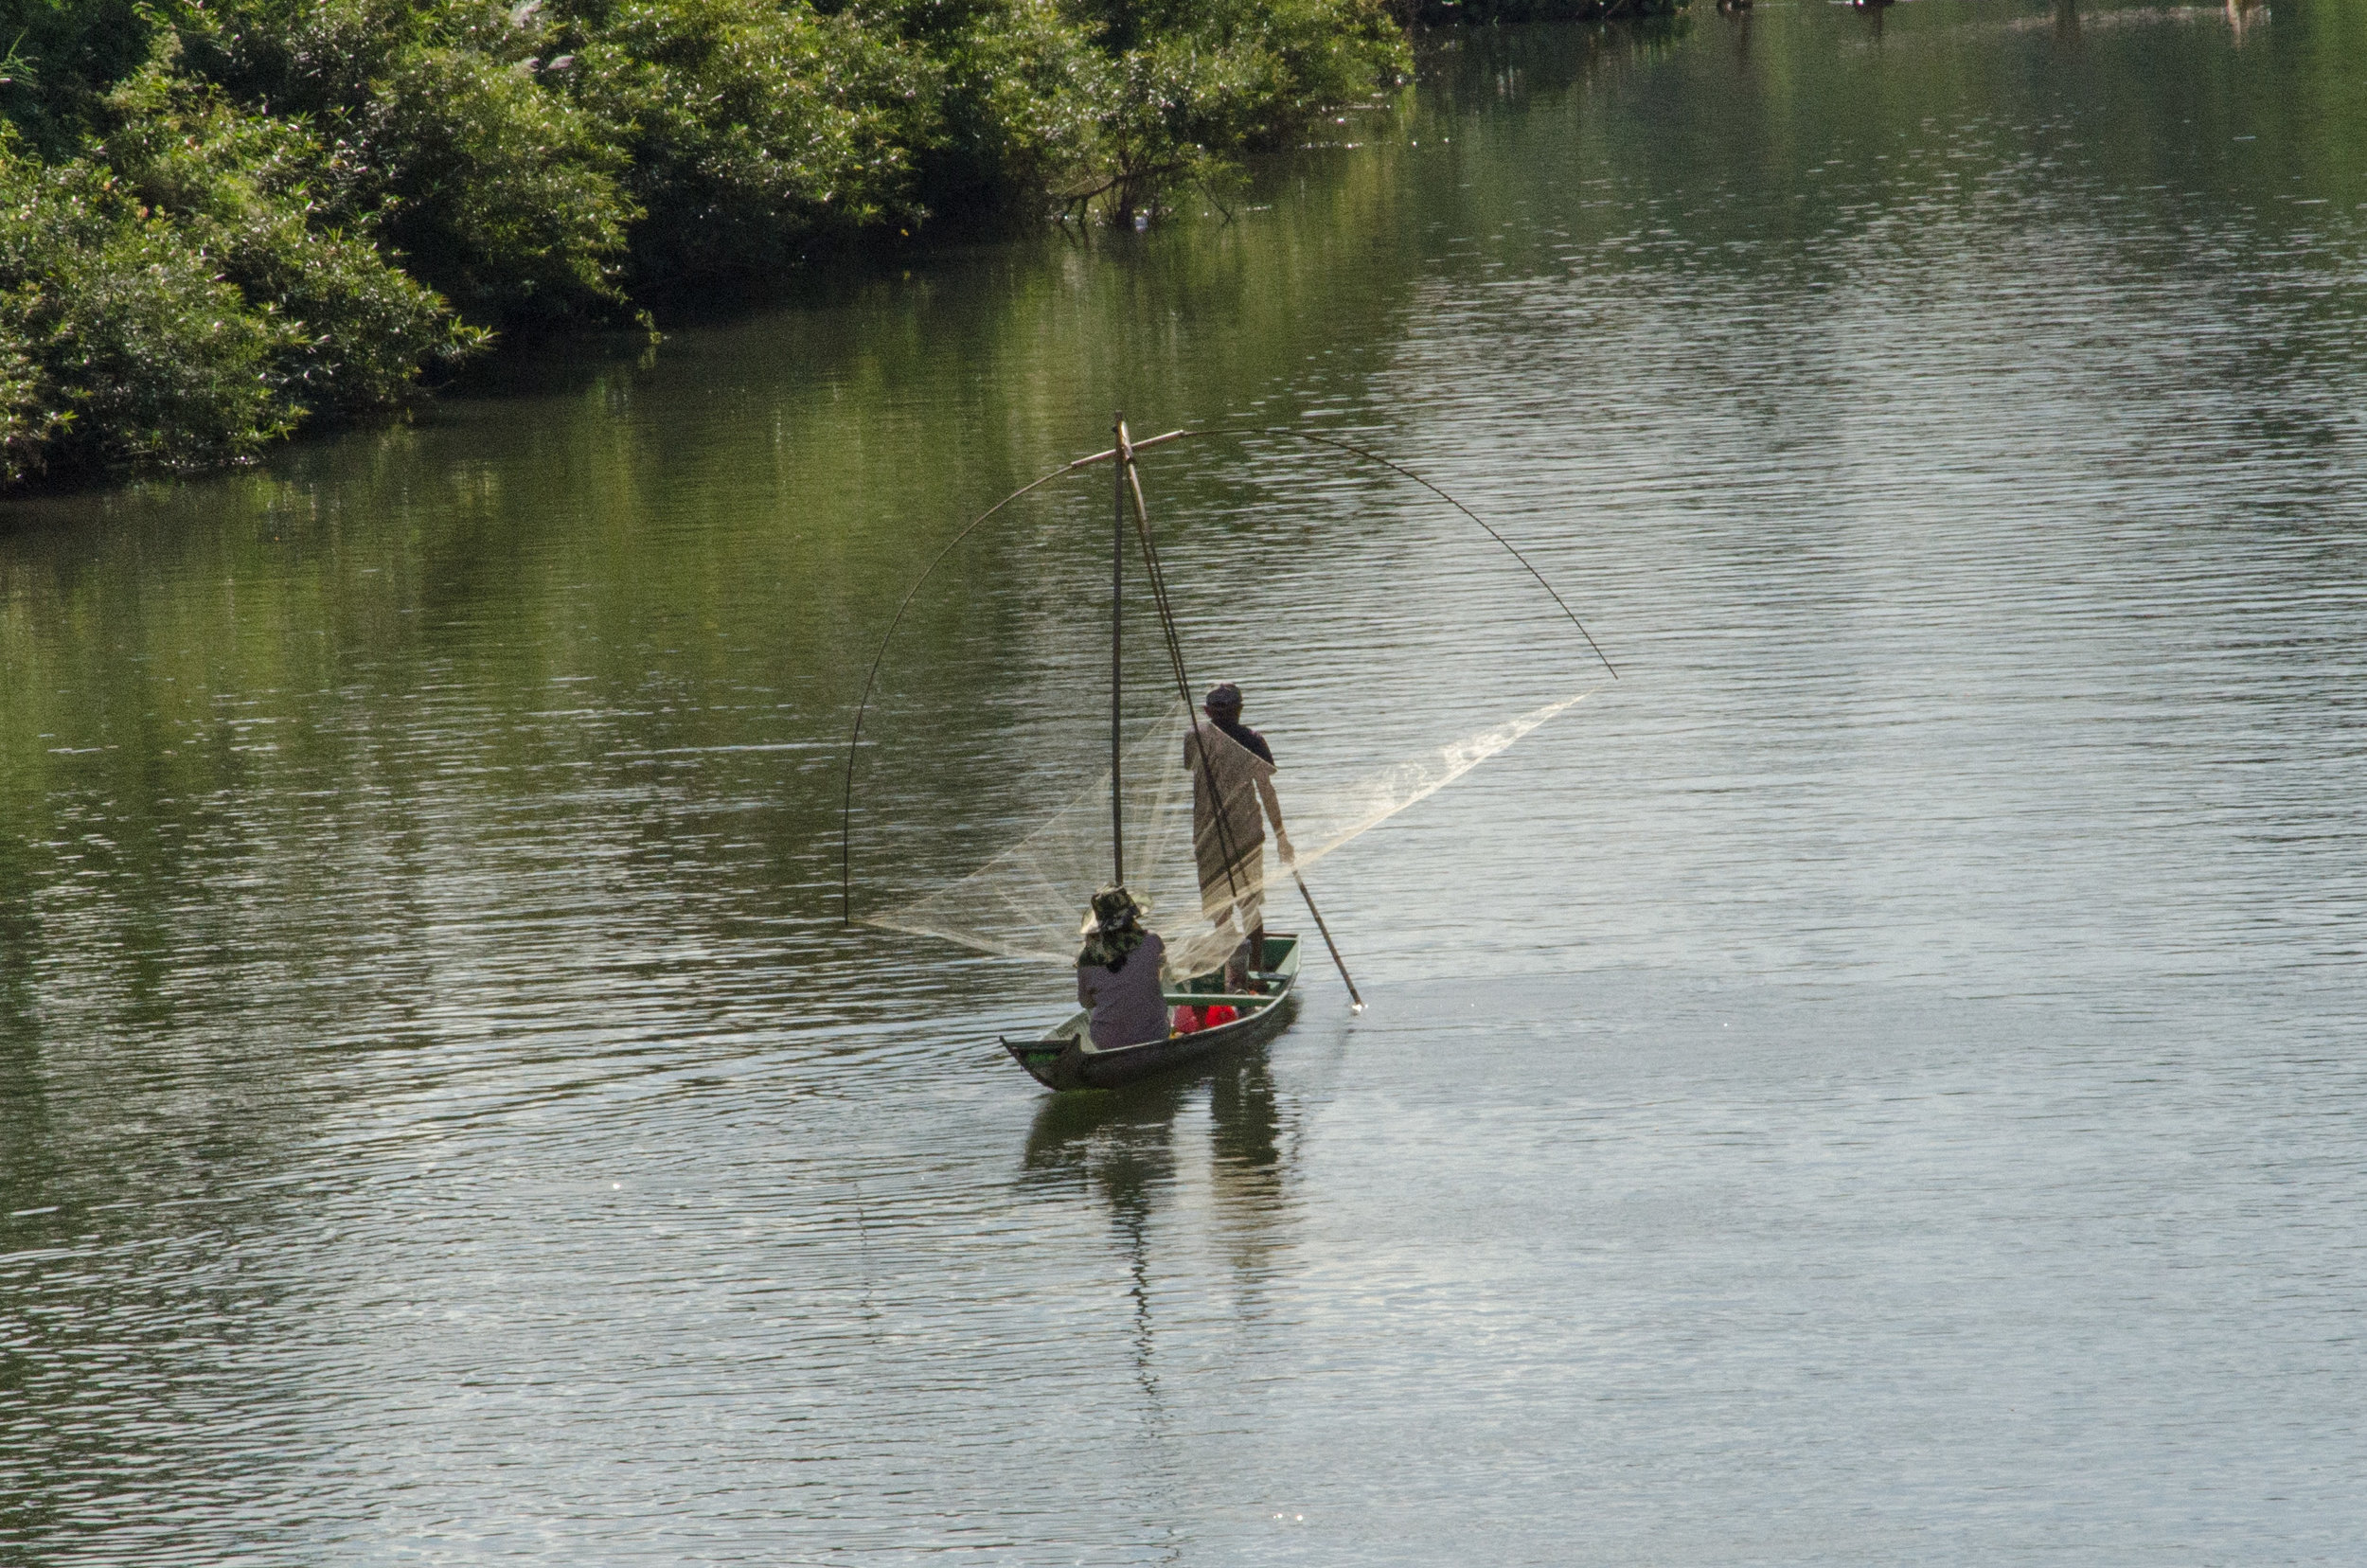 Fisherman, Nan Song River, Vang Vieng, Laos, 29 Nov 2017.jpg